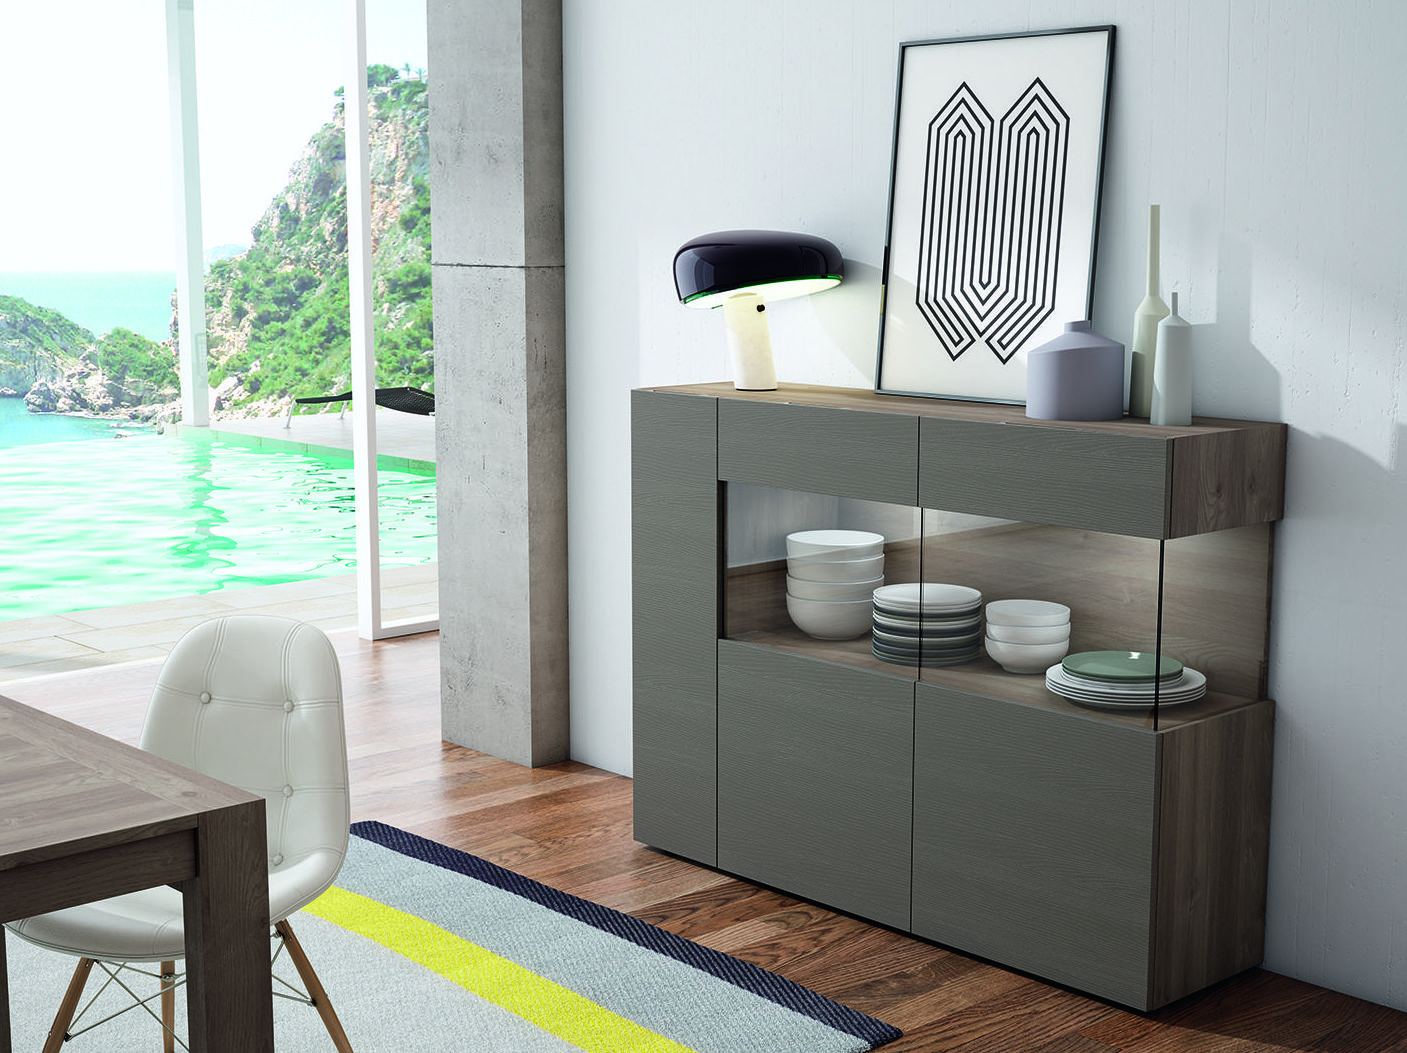 Picture 21 of Muebles y decoración in València | ilumueble